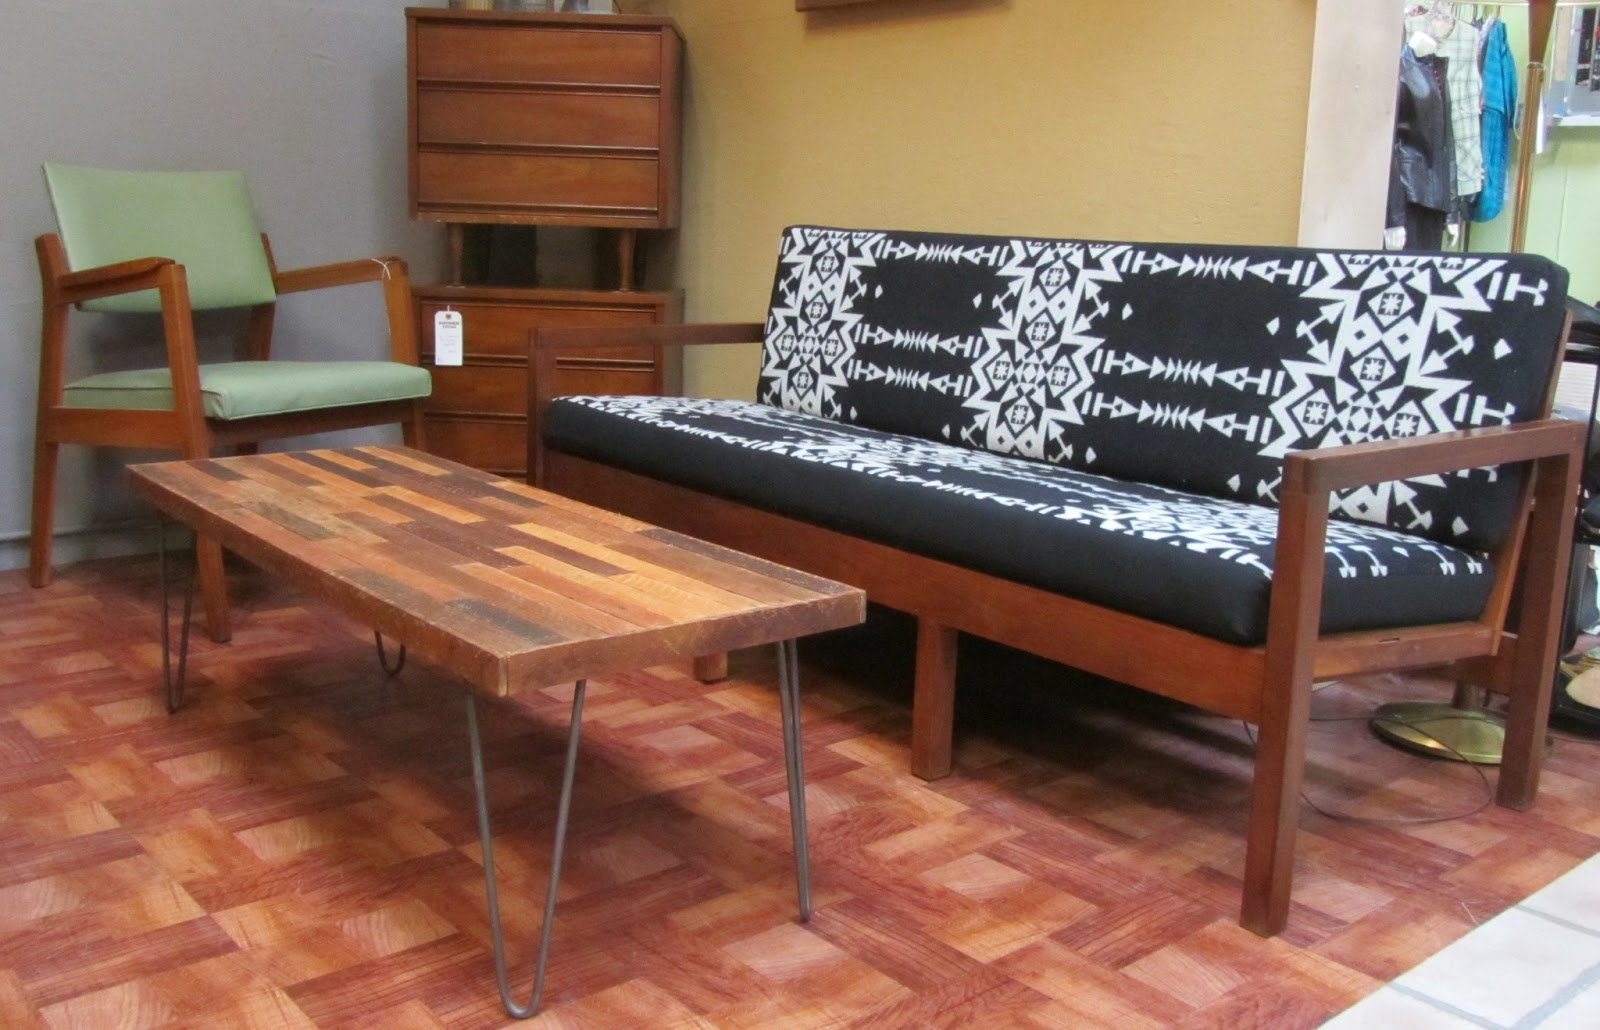 Mid century modern furniture portland or elegant interior for Portland reclaimed wood furniture